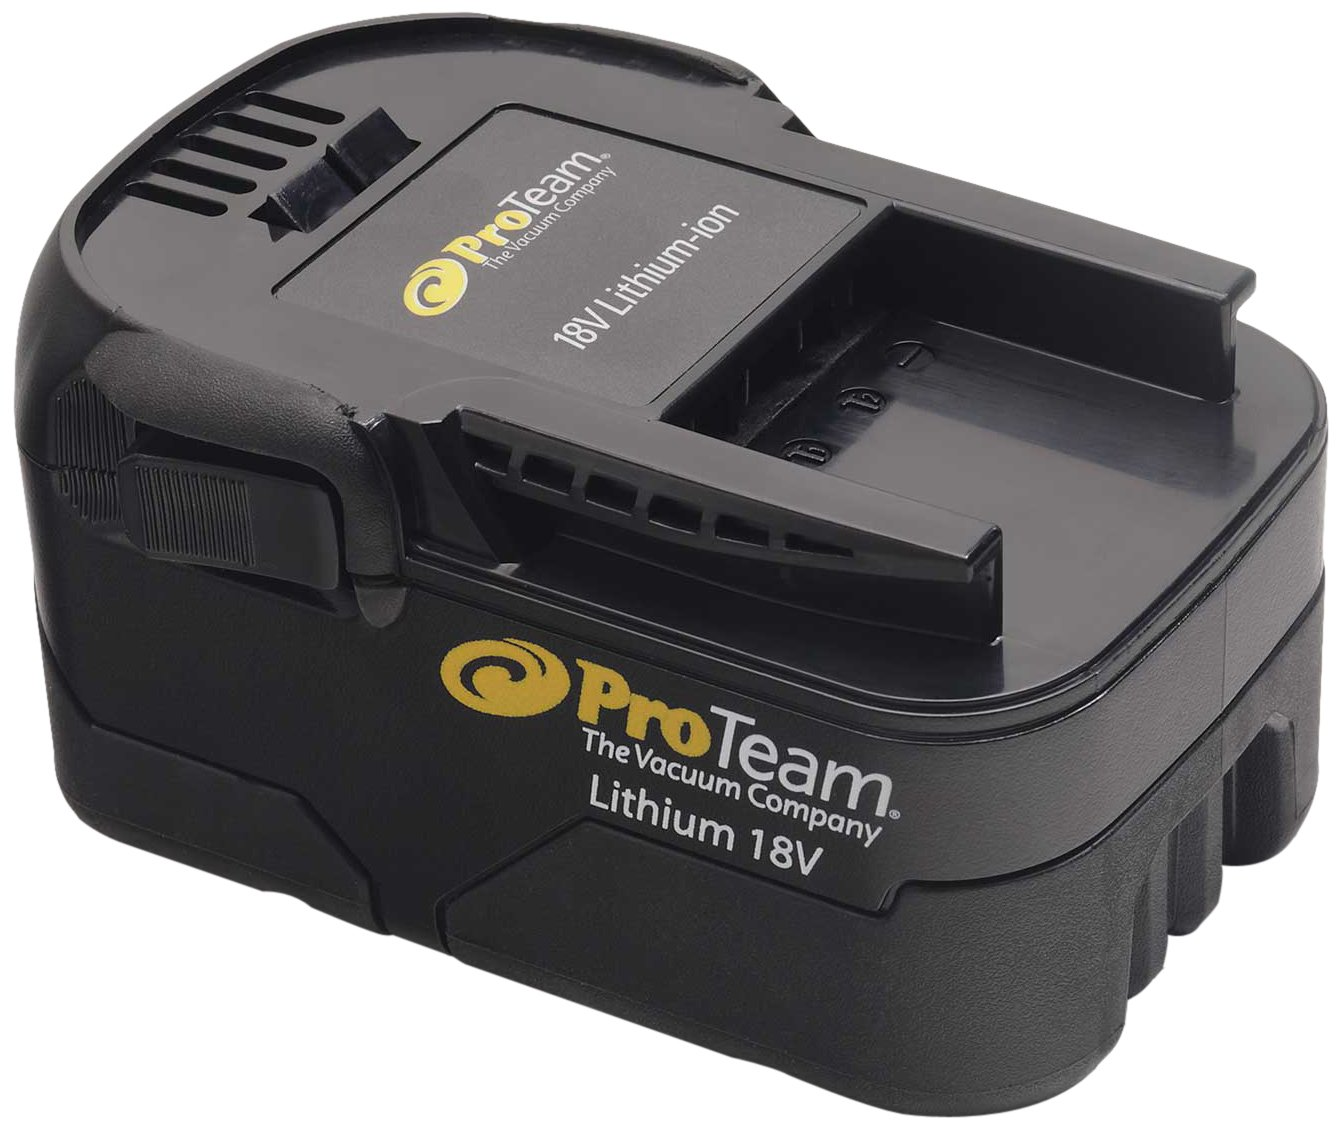 ProTeam 18V Replacement Battery for Wet/Dry Vacuum ProGuard LI 3 gln